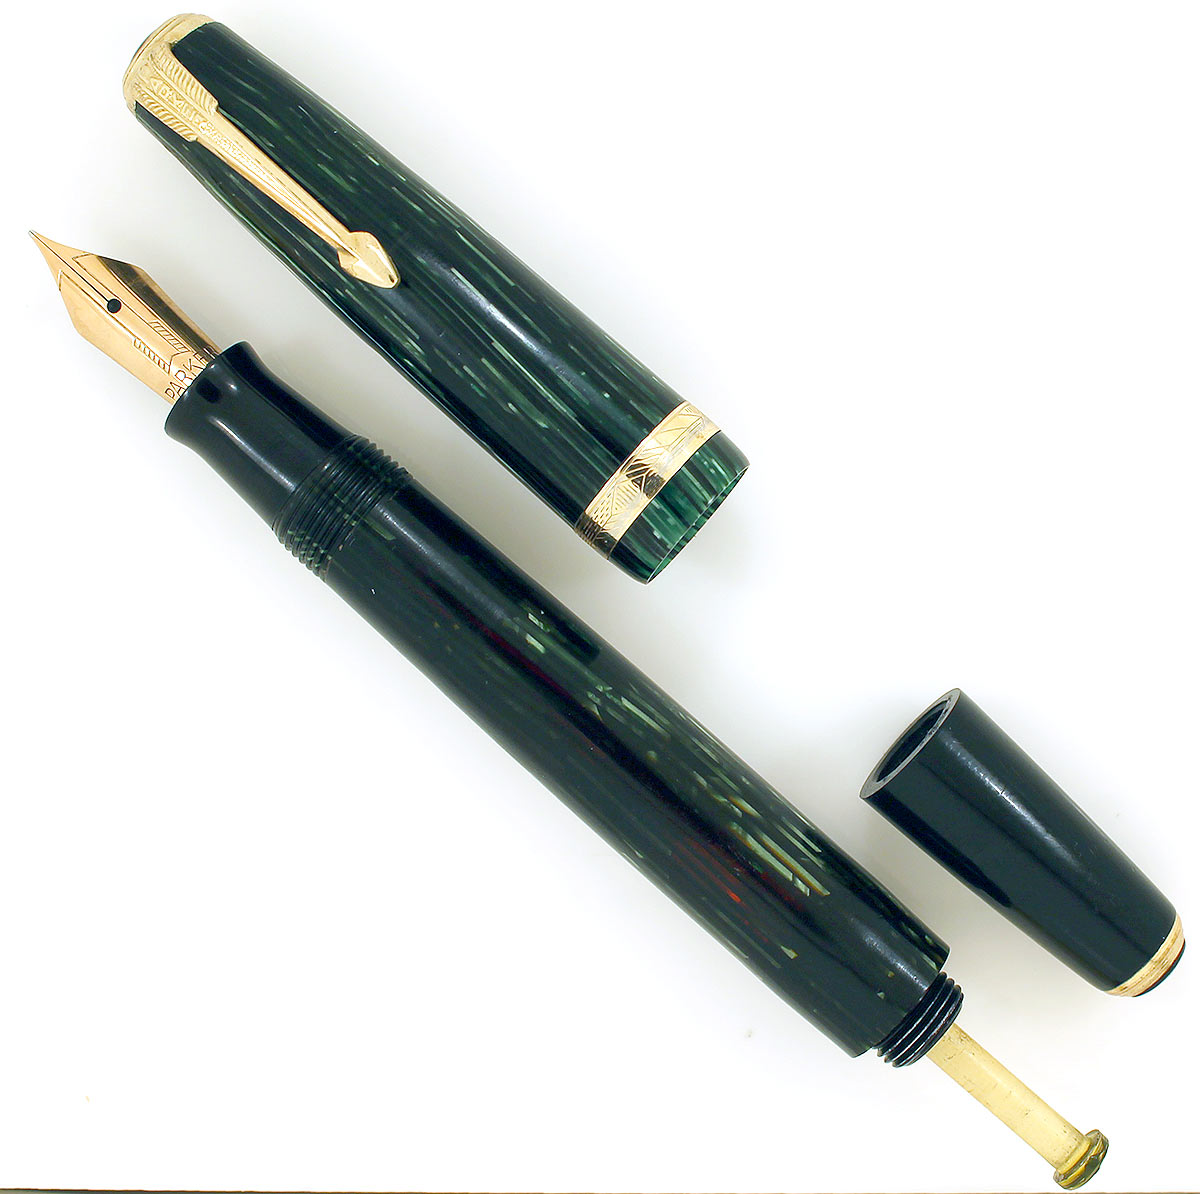 RESTORED 1939 PARKER EMERALD PEARL VACUMATIC SHADOW WAVE DEBUTANTE FOUNTAIN PEN W/ STAR CLIP